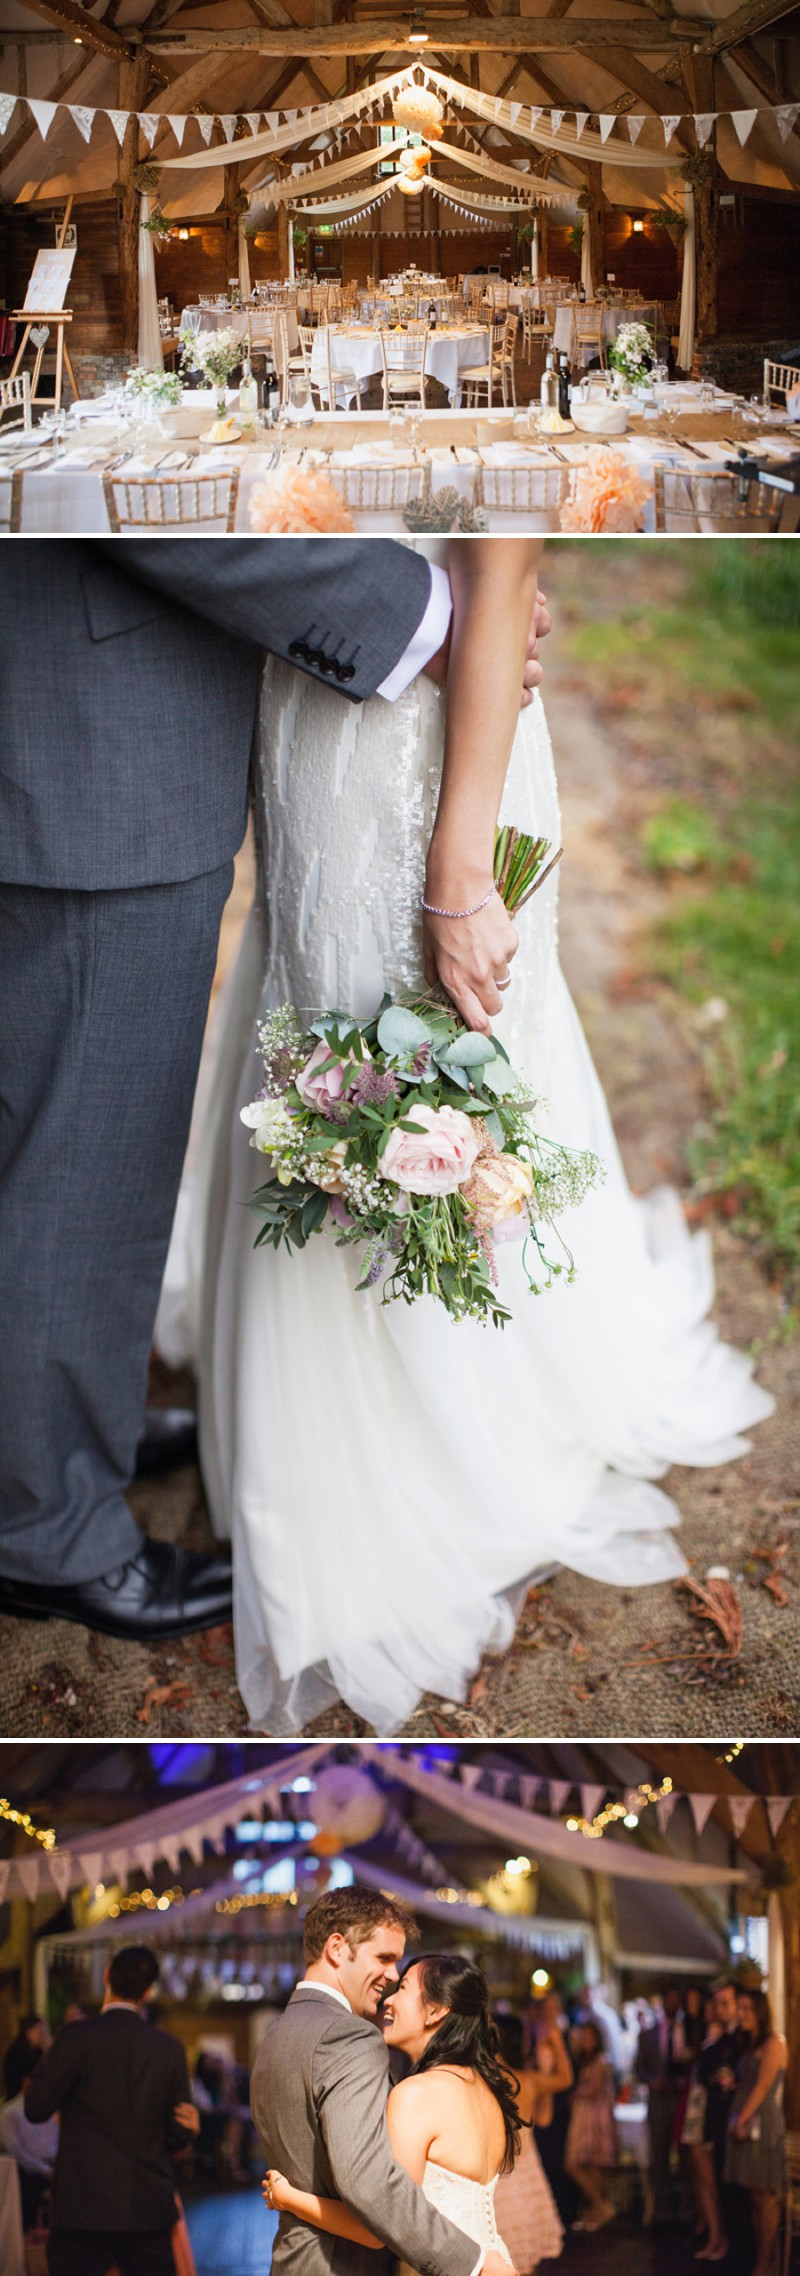 A Fun And Pretty English Garden Wedding At Lains Barn In Oxford With A Stephanie Allin Hayworth Dress And A Peony Bouquet By Hayley Savage Photography._0011